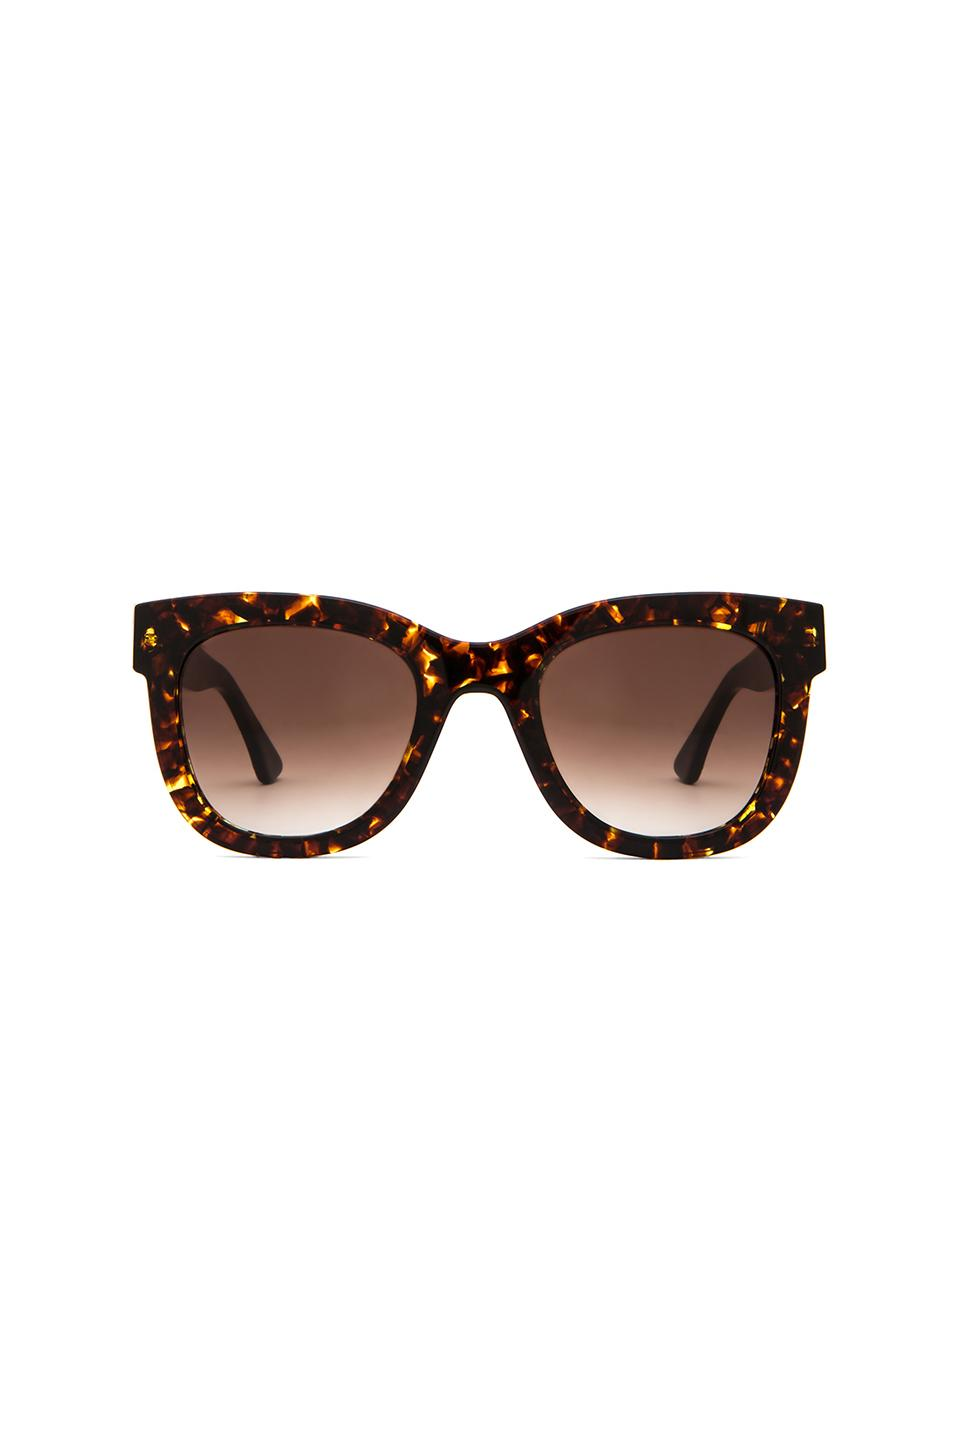 Thierry Lasry Obsessy Sunglasses in Tortoise